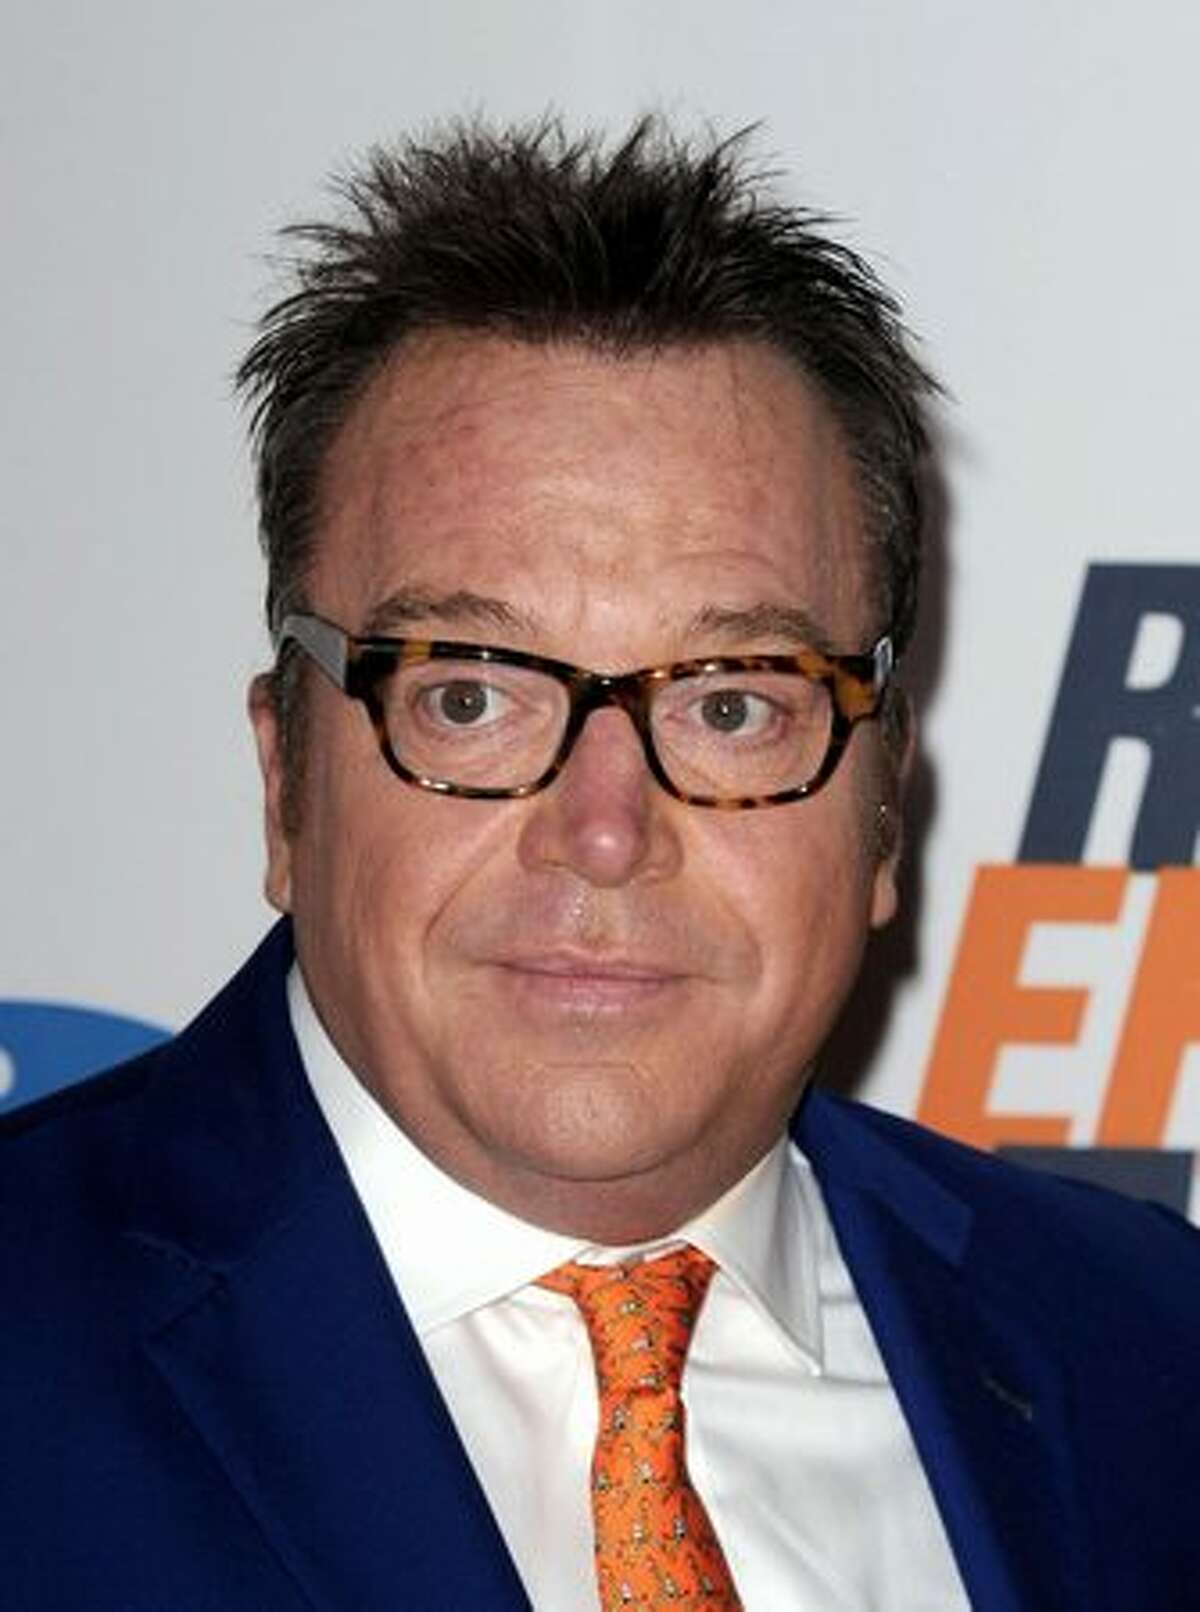 Tom Arnold, May 7, 2010, age 51.